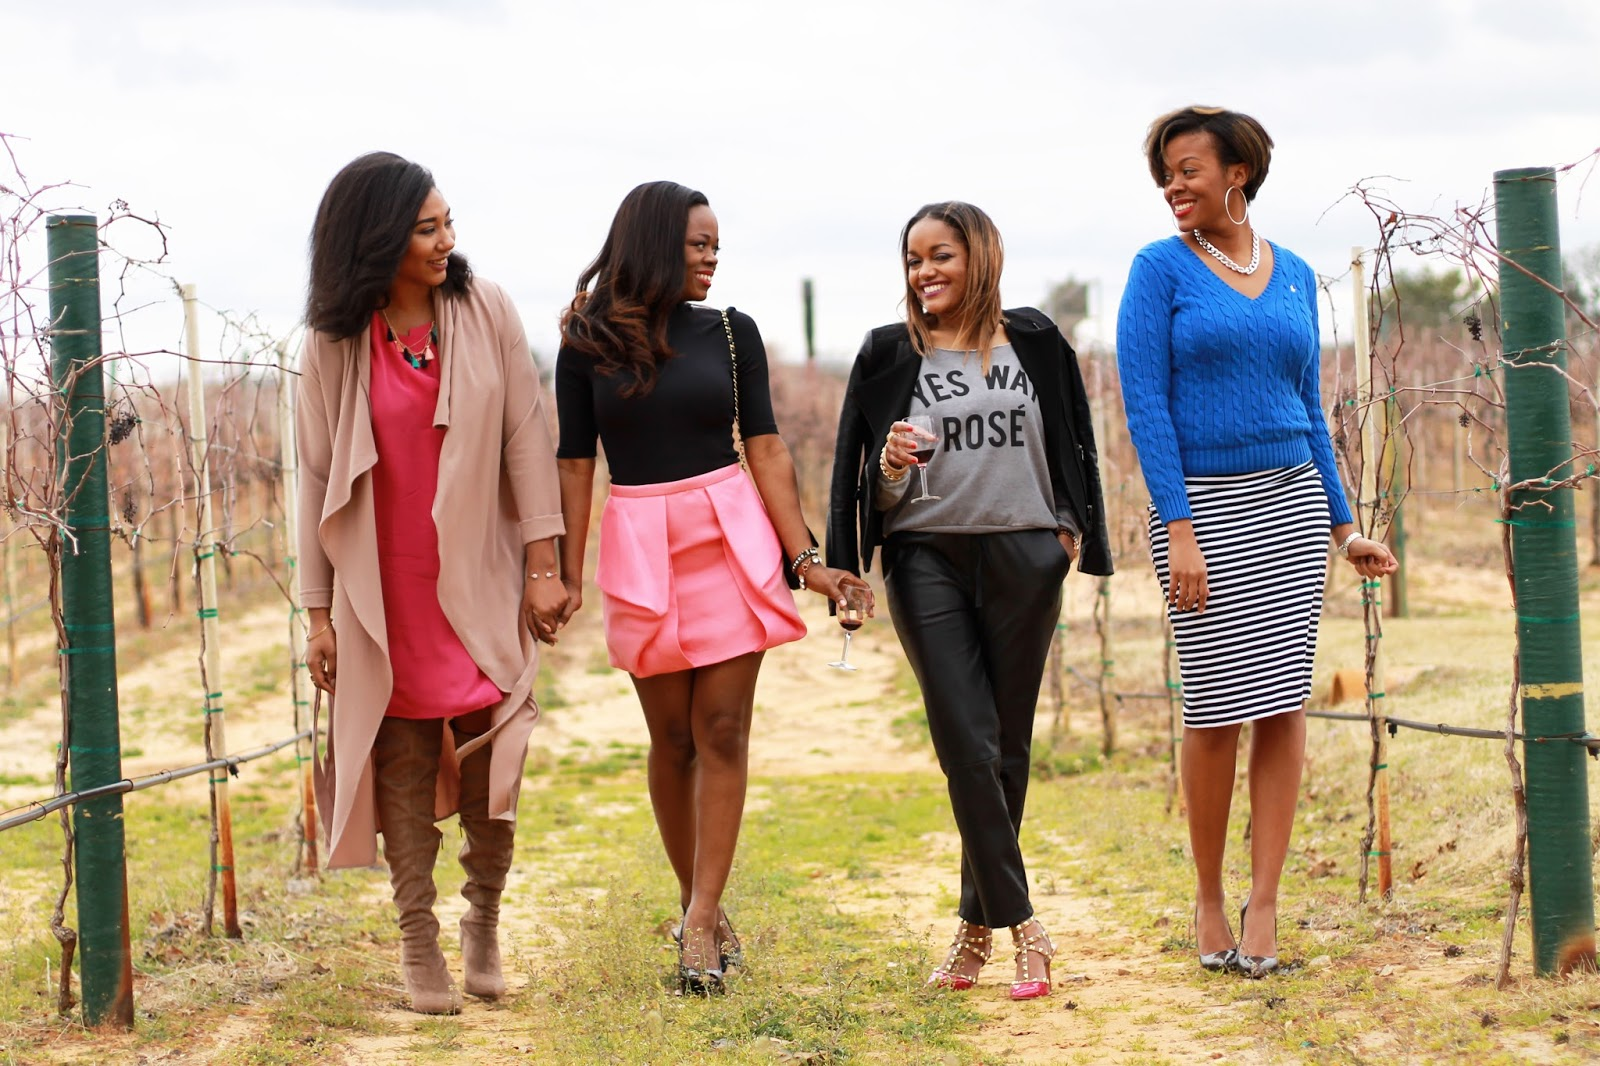 "squad goals- target sweatshirt- off shoulder sweatshirt- yes way rose'-leather jogger pants for women- ann taylor leather pants- bcbgeneration shoes- valentino rockstud look for less- zara jacket- thredUp- ""Galentines day""- brown girl bloggers- fashion blogger- dallas blogger"